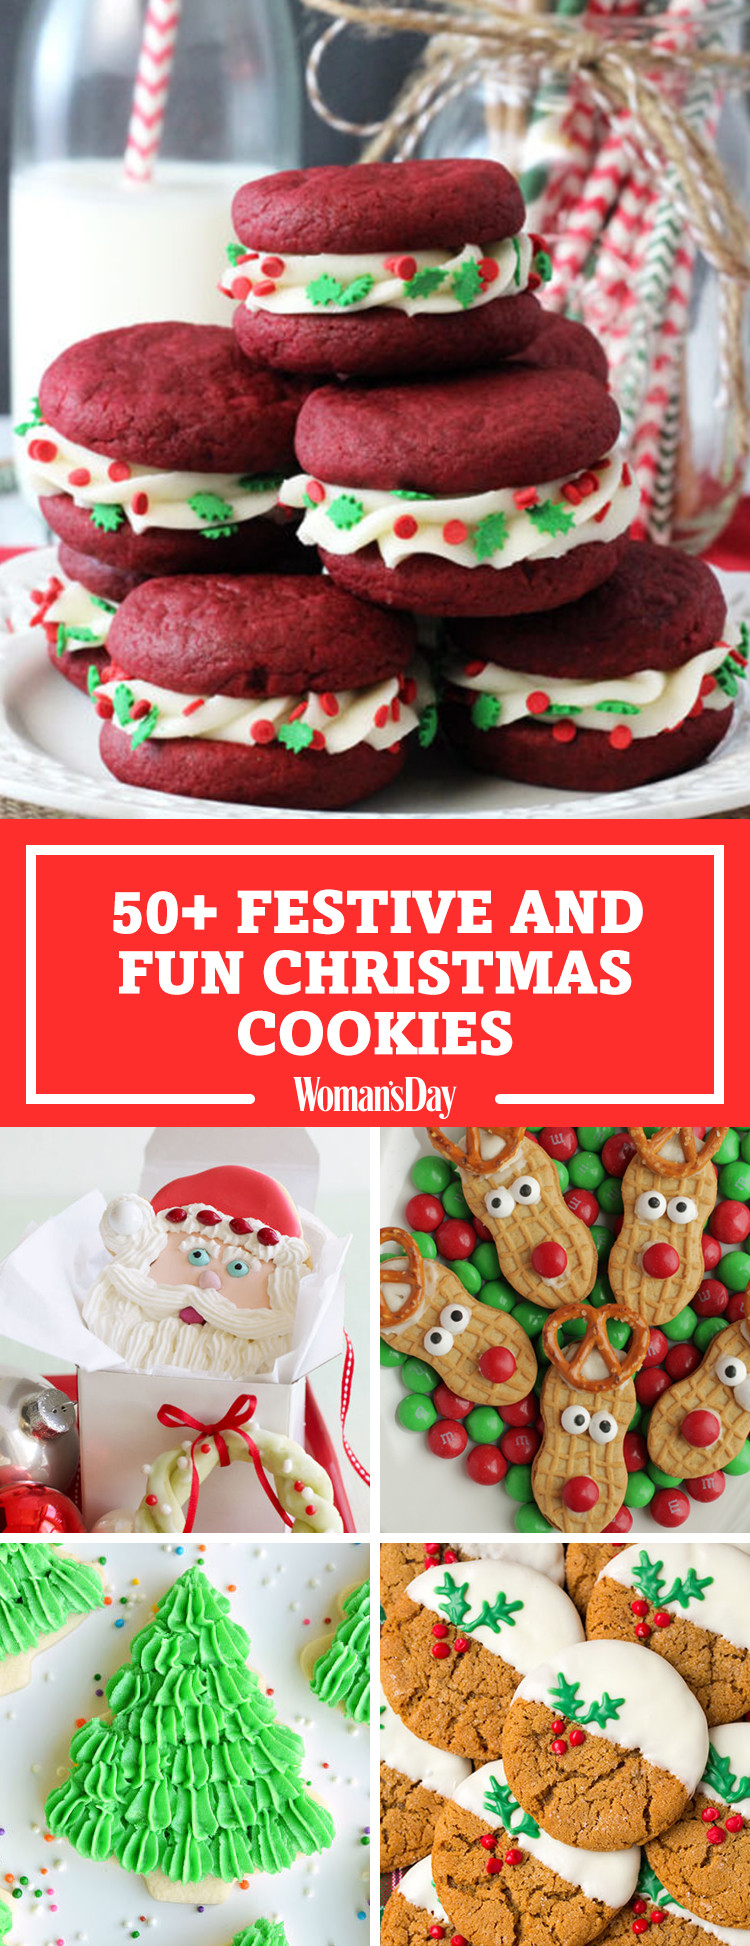 Fun Christmas Cookies Recipe  59 Easy Christmas Cookies Best Recipes for Holiday